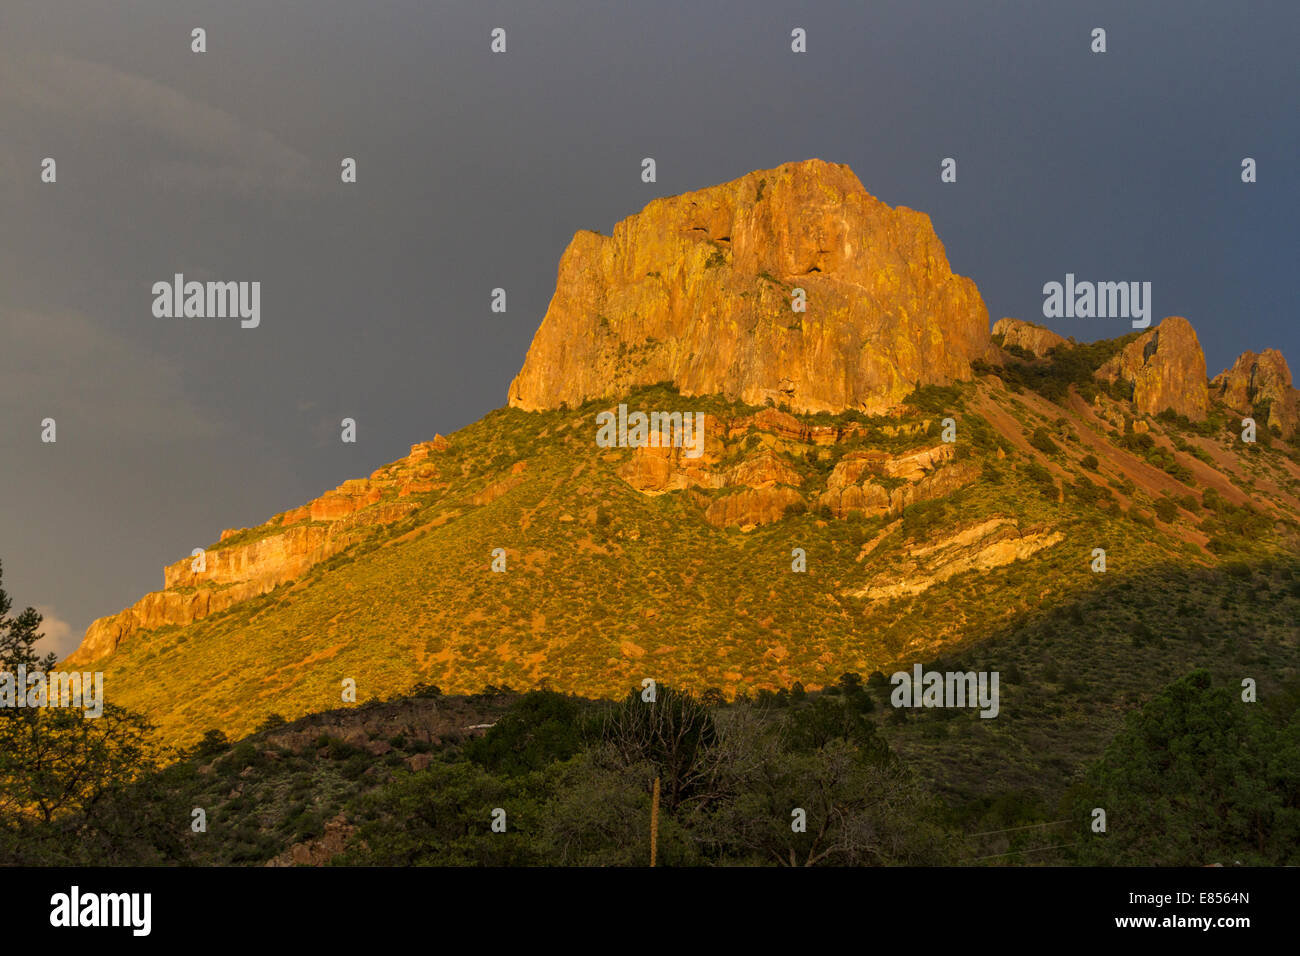 Sunset golden light on Casa Grande Mountain in the Chisos Mountains in Big Bend National Park in West Texas. Stock Photo